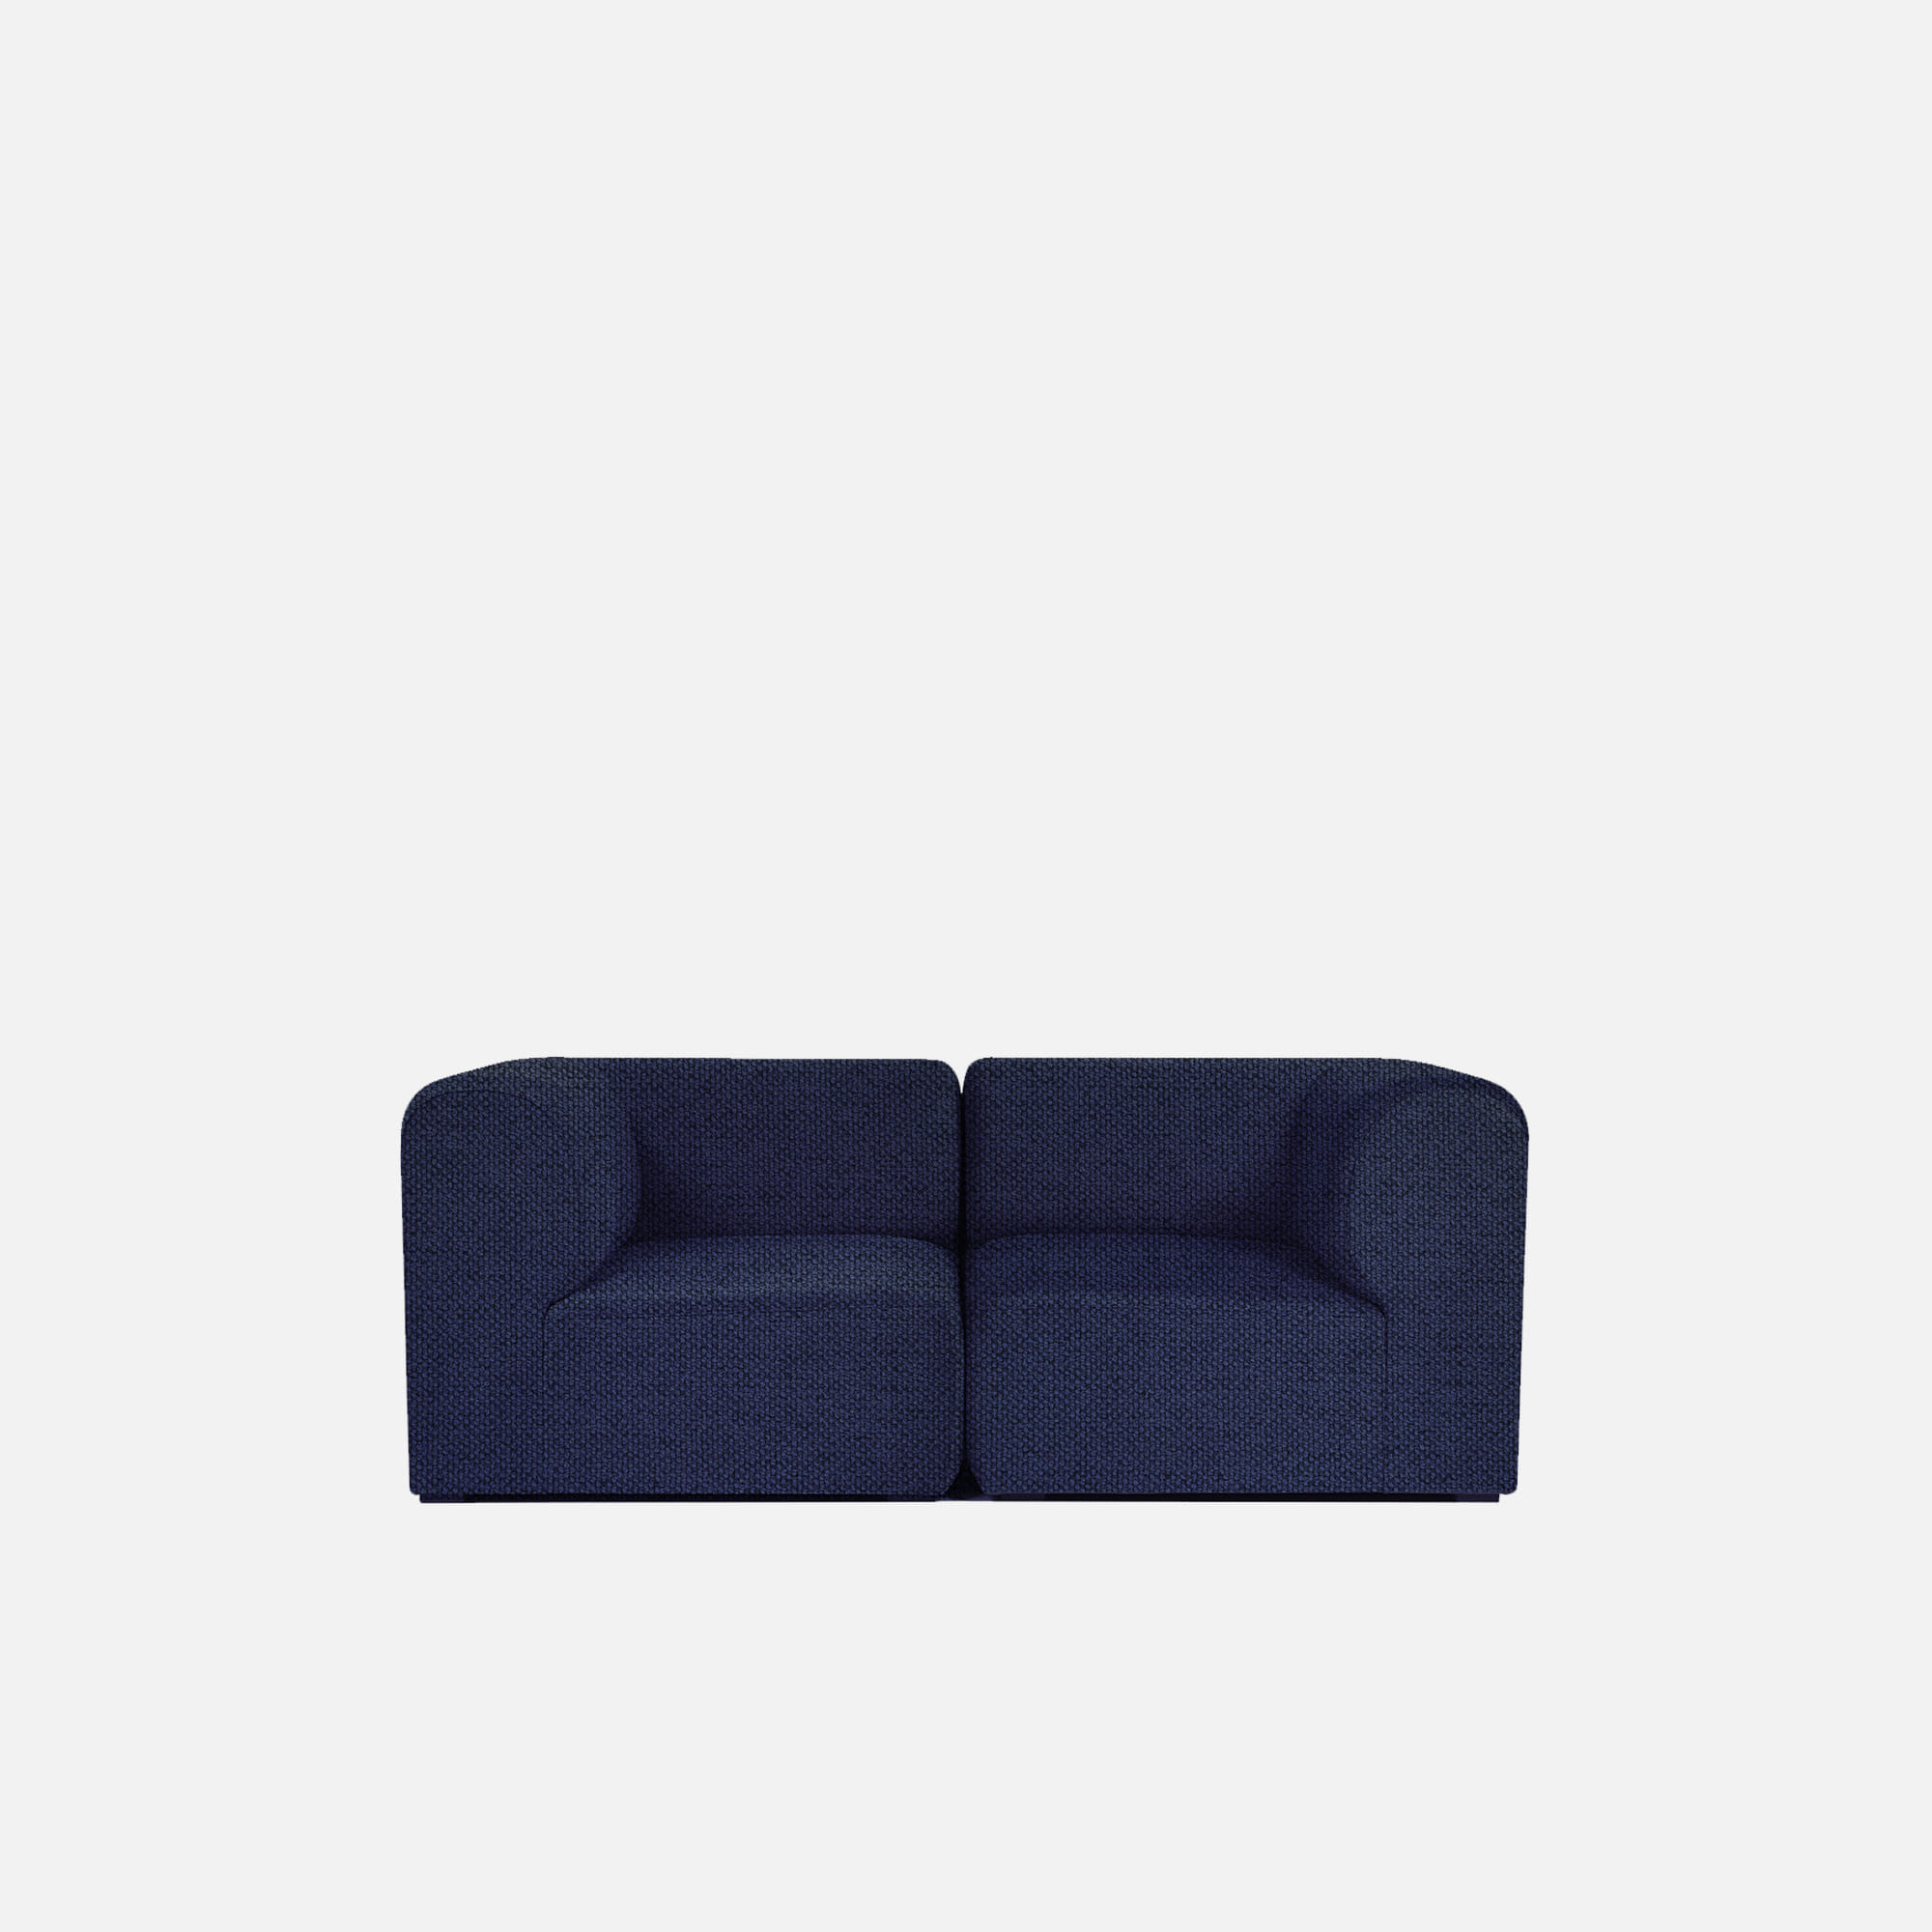 Mellow 2 unit Sofa